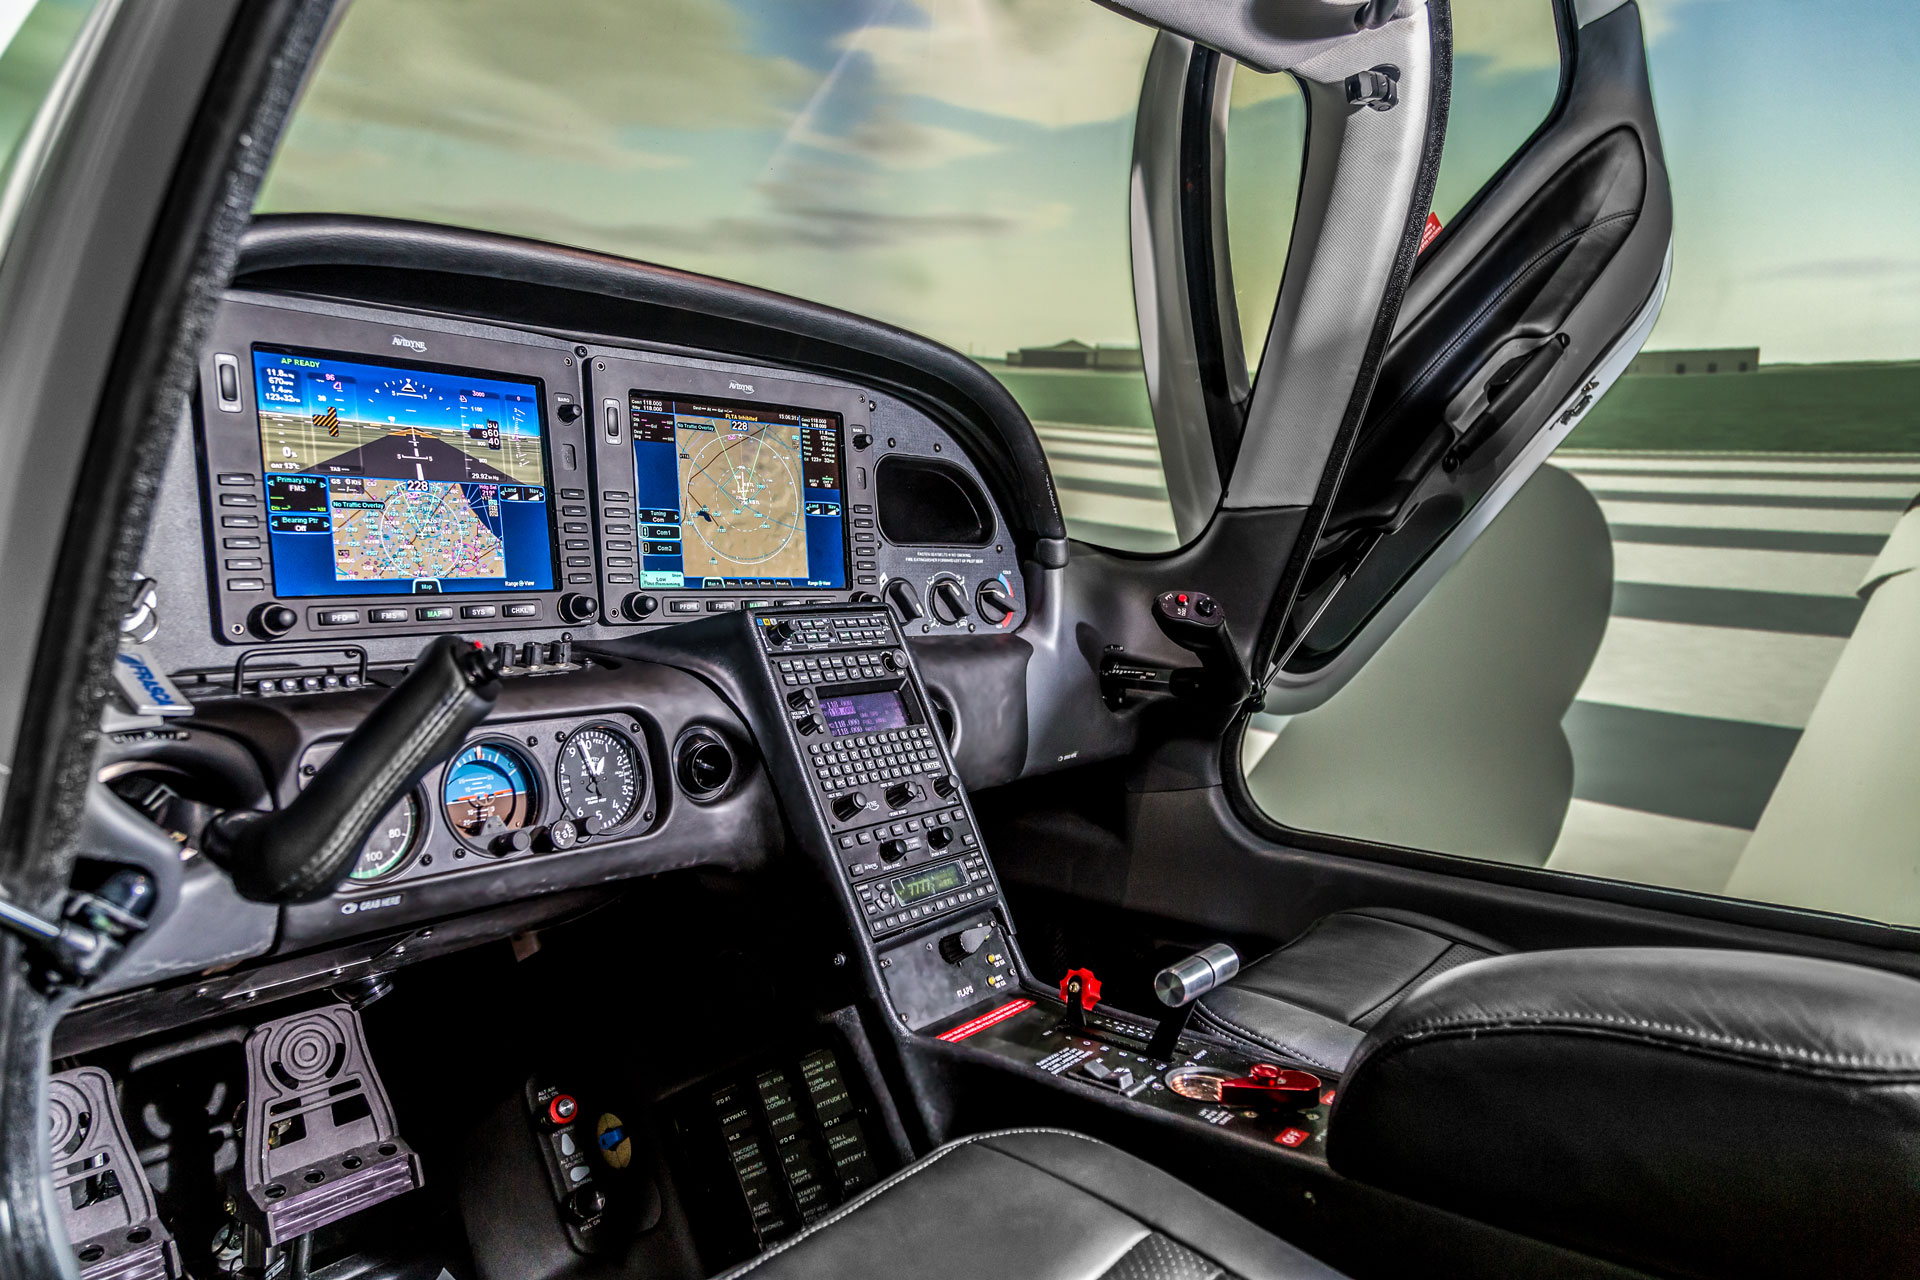 helicopter simulator training with Cirrus Sr20 on Piper Seminole also 87 as well Employers Of Defence Reservists S le Navy Experience furthermore Airwolf Fsx 486 furthermore Bell 47g Sioux H 13 Fsx P3d 753.